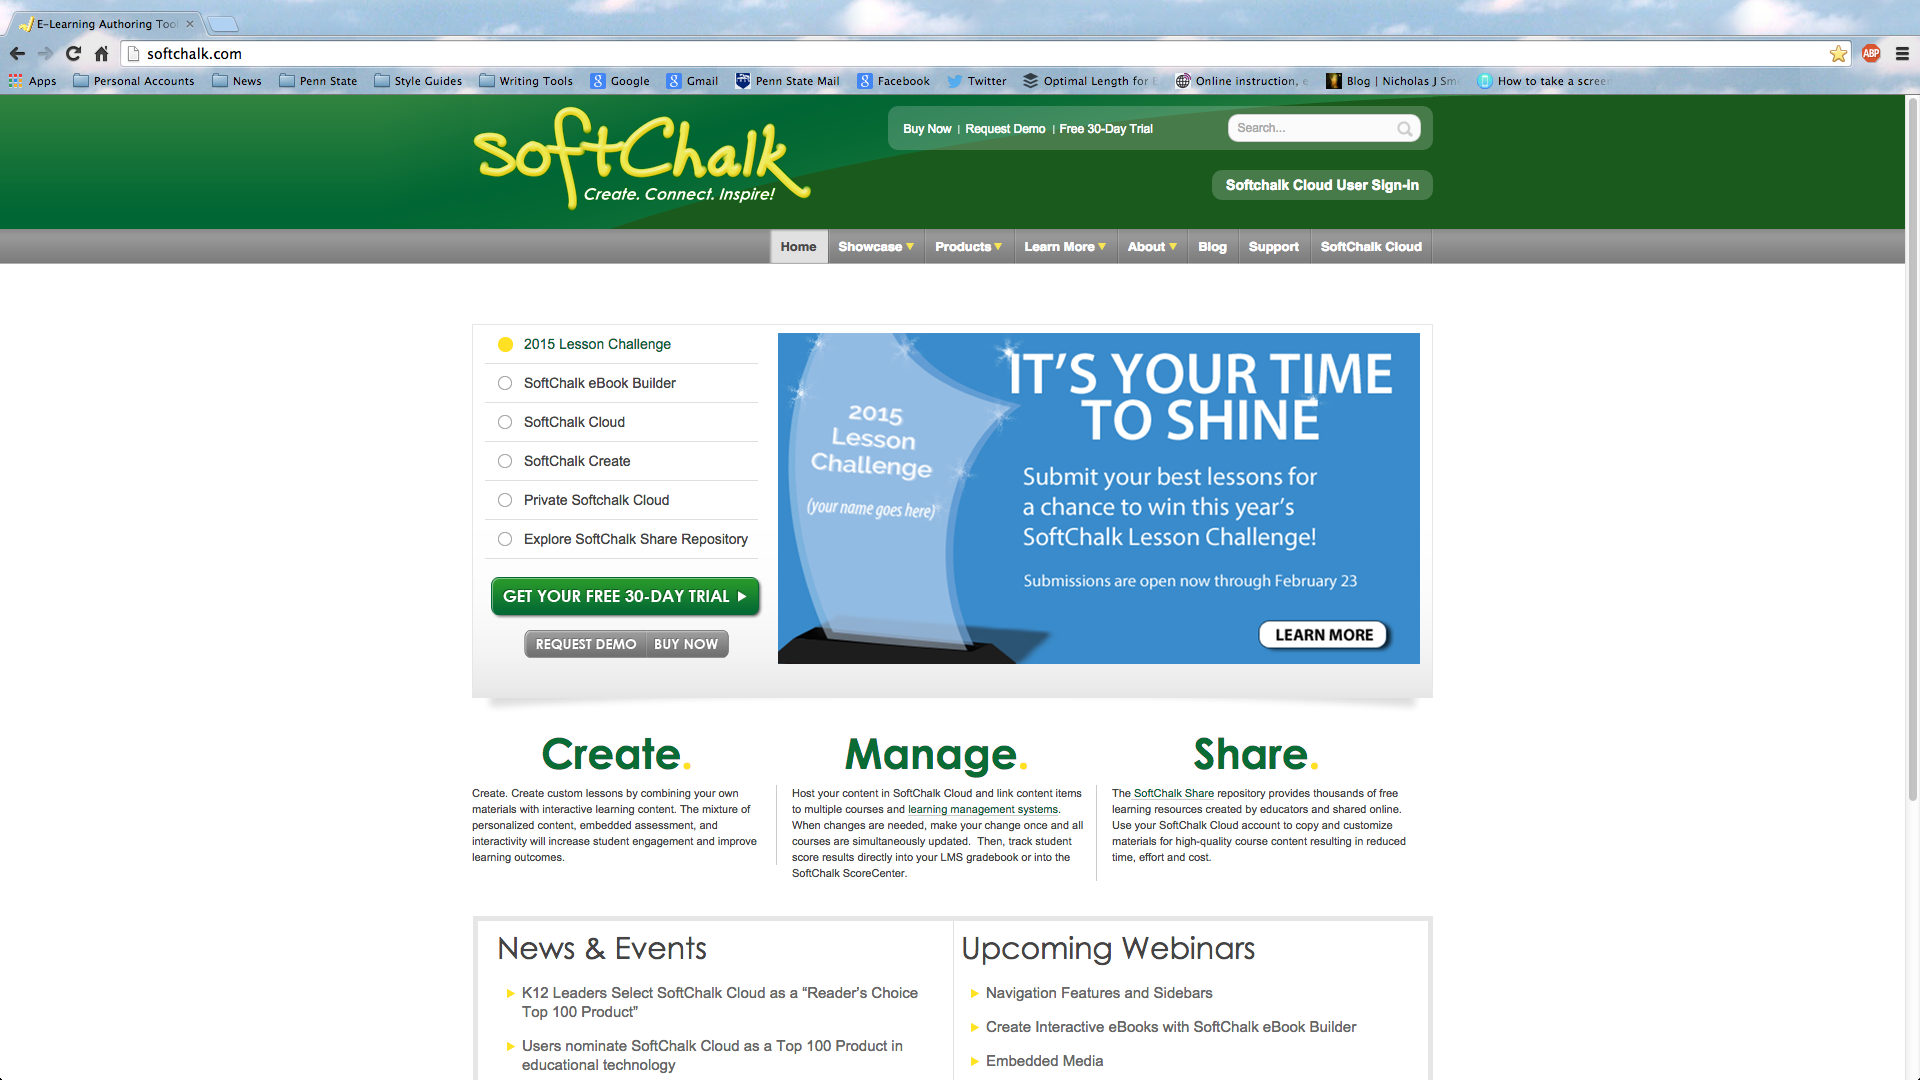 SoftChalk's home web page